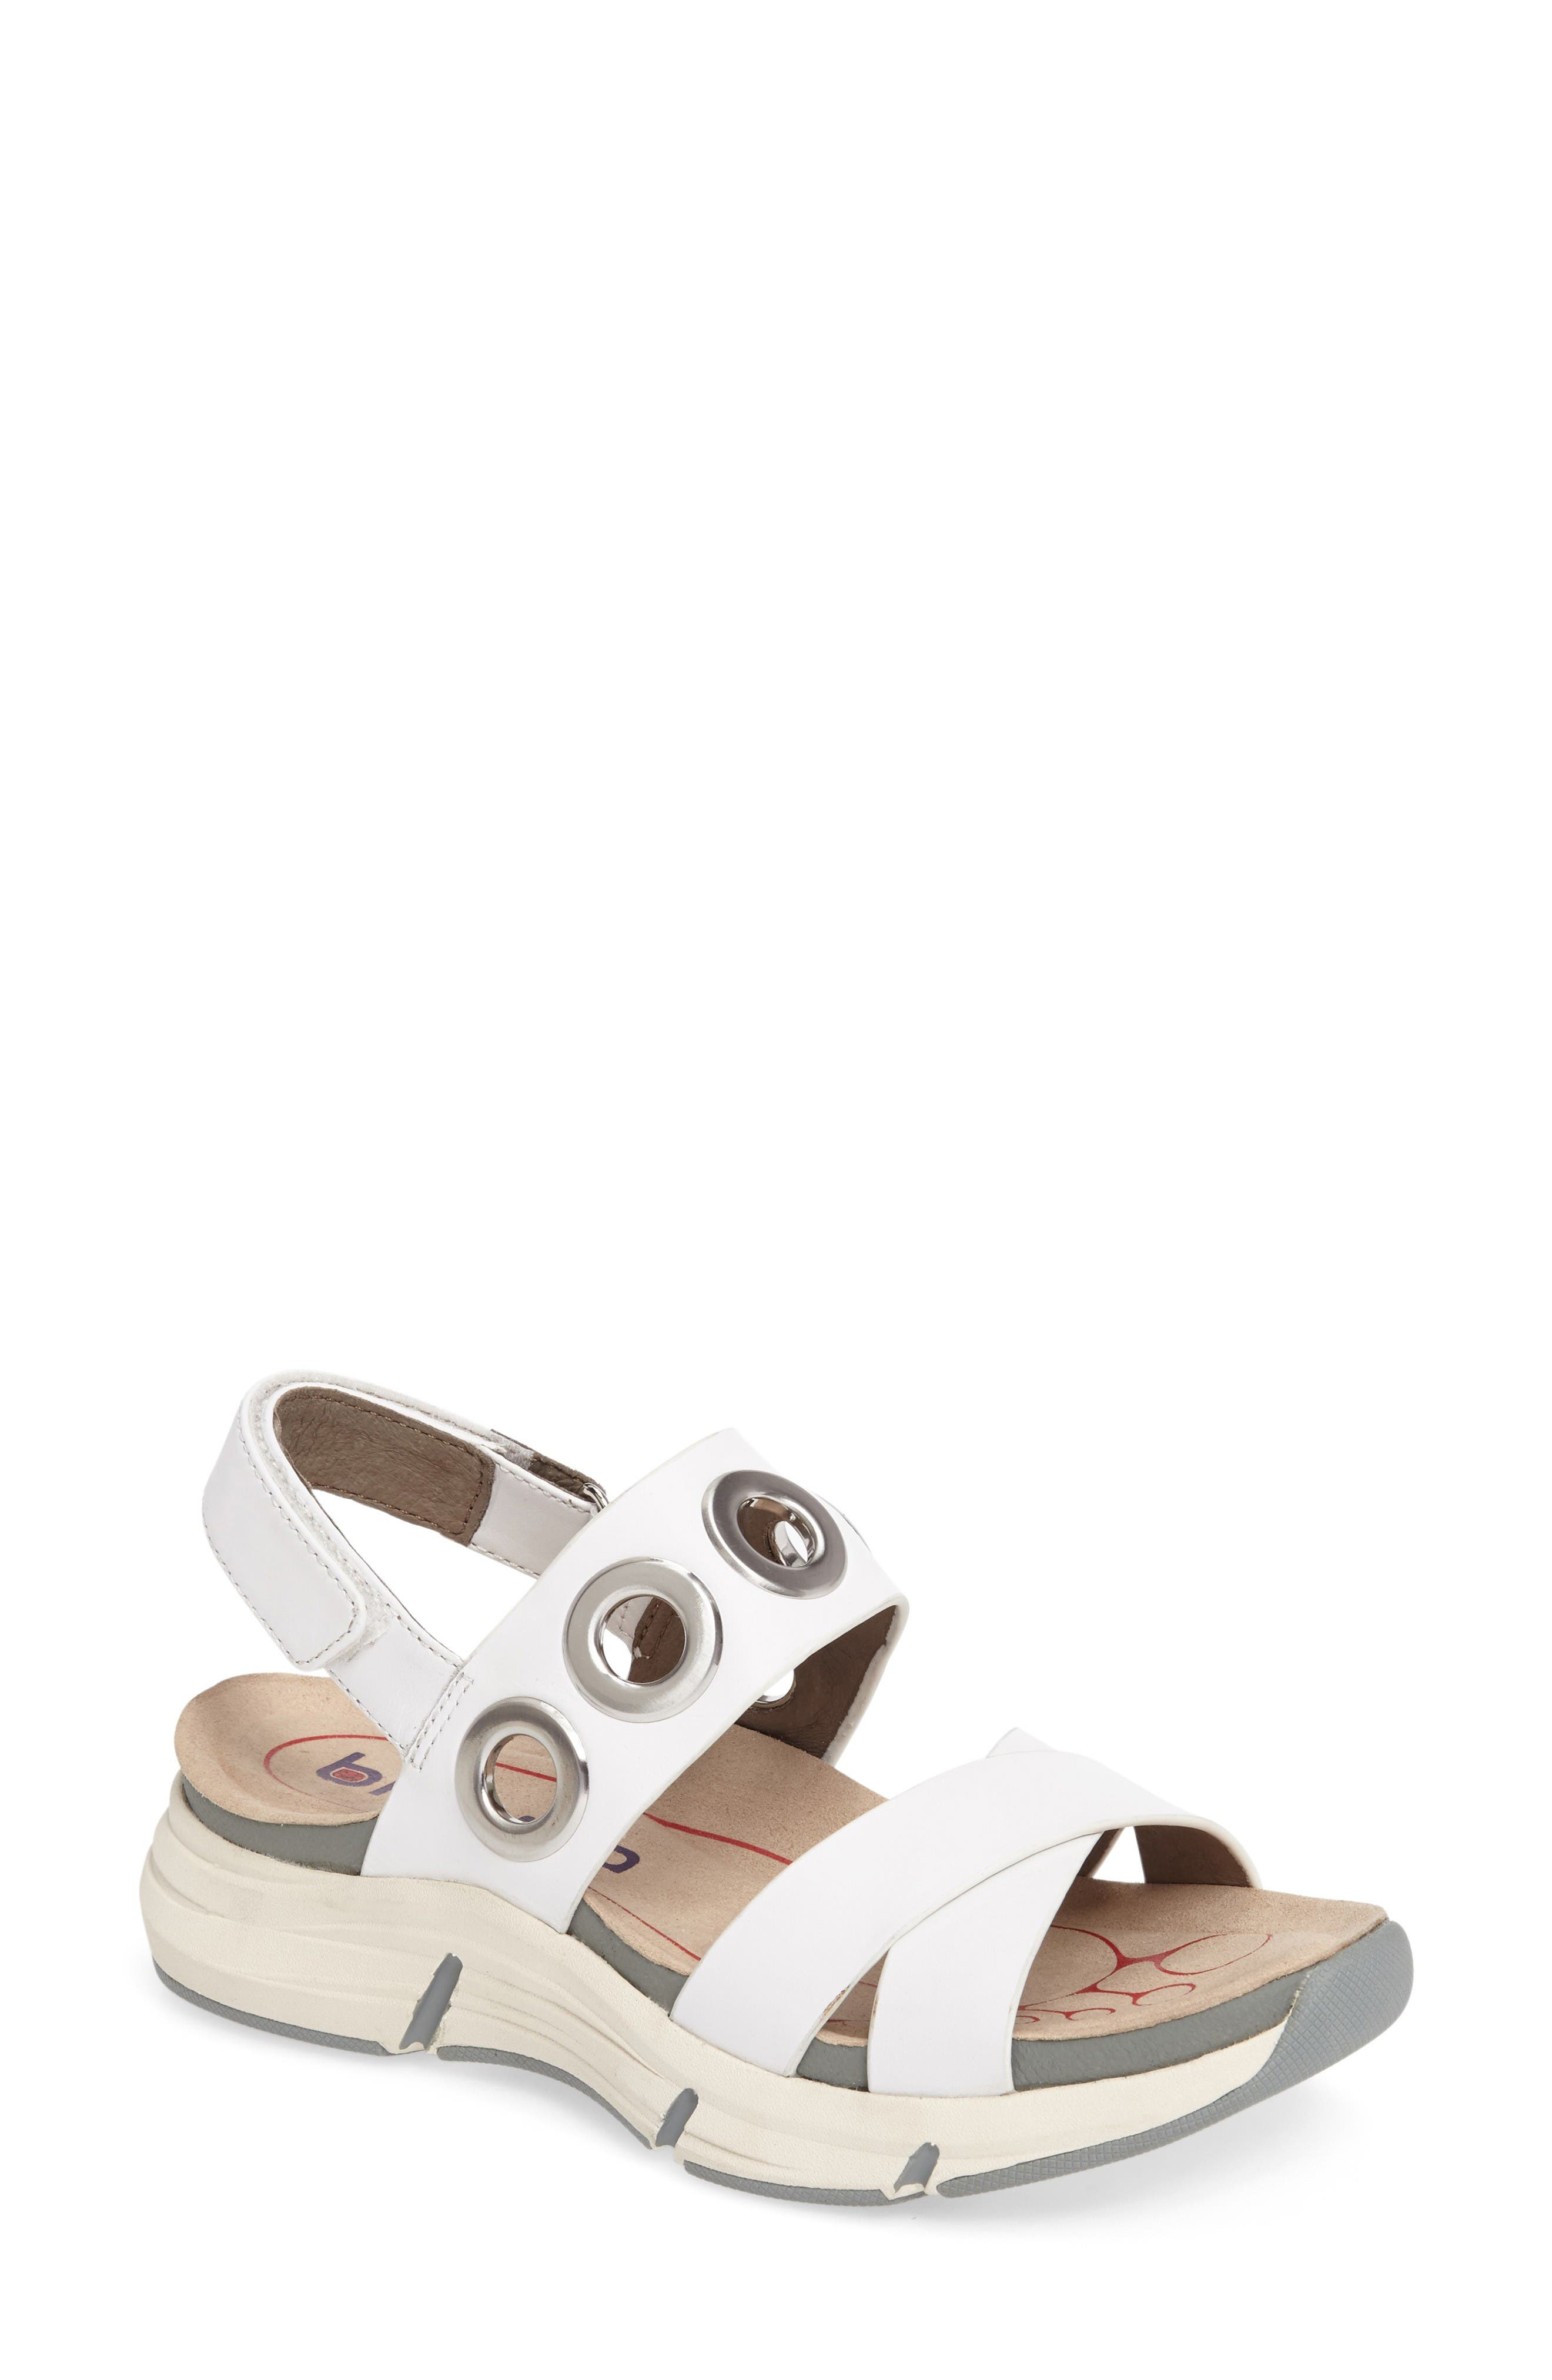 Olney Sandal,                         Main,                         color, White Leather